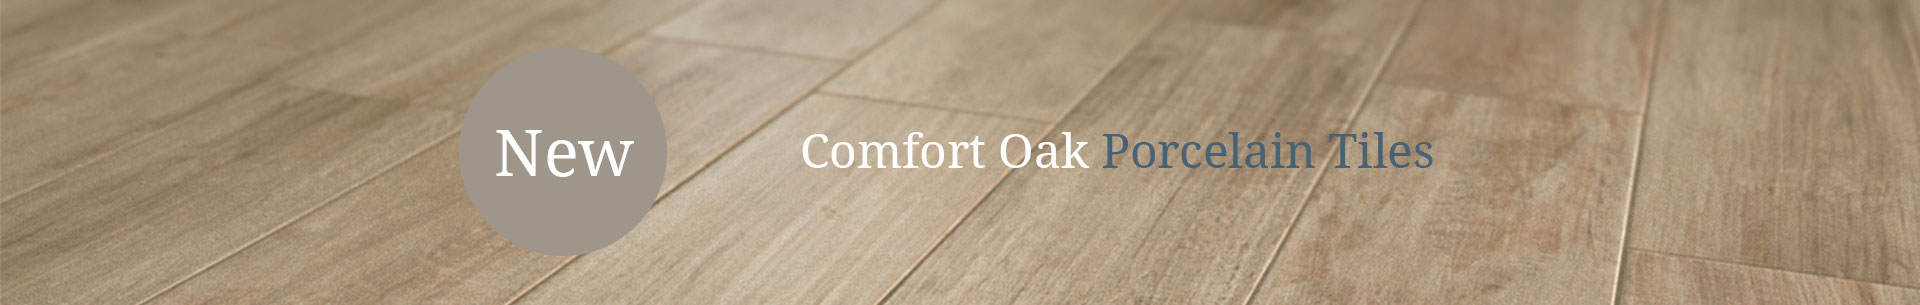 New Comfort Oak Porcelain Tiles